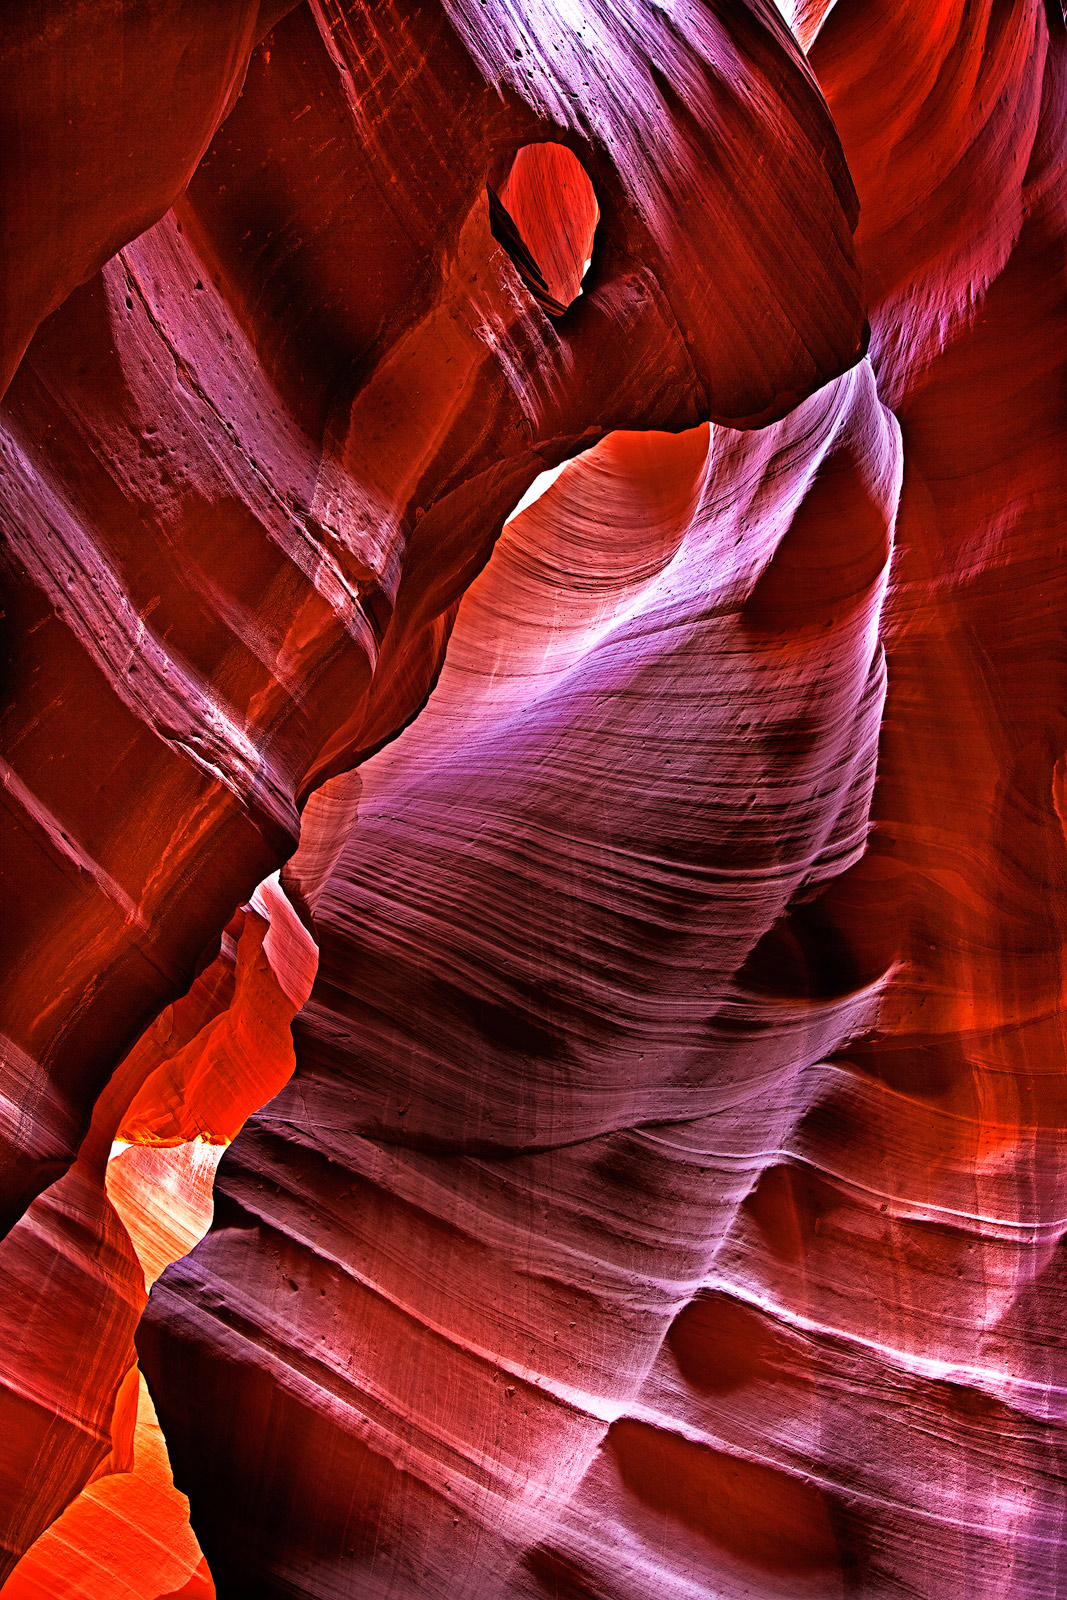 america,antelope canyon,arizona,canyon,navajo,navajo nation,navajo territory,north america,page,rock,sandstone,slot,southwest,united states,upper antelope,upper antelope canyon,us,usa,vertical, photo